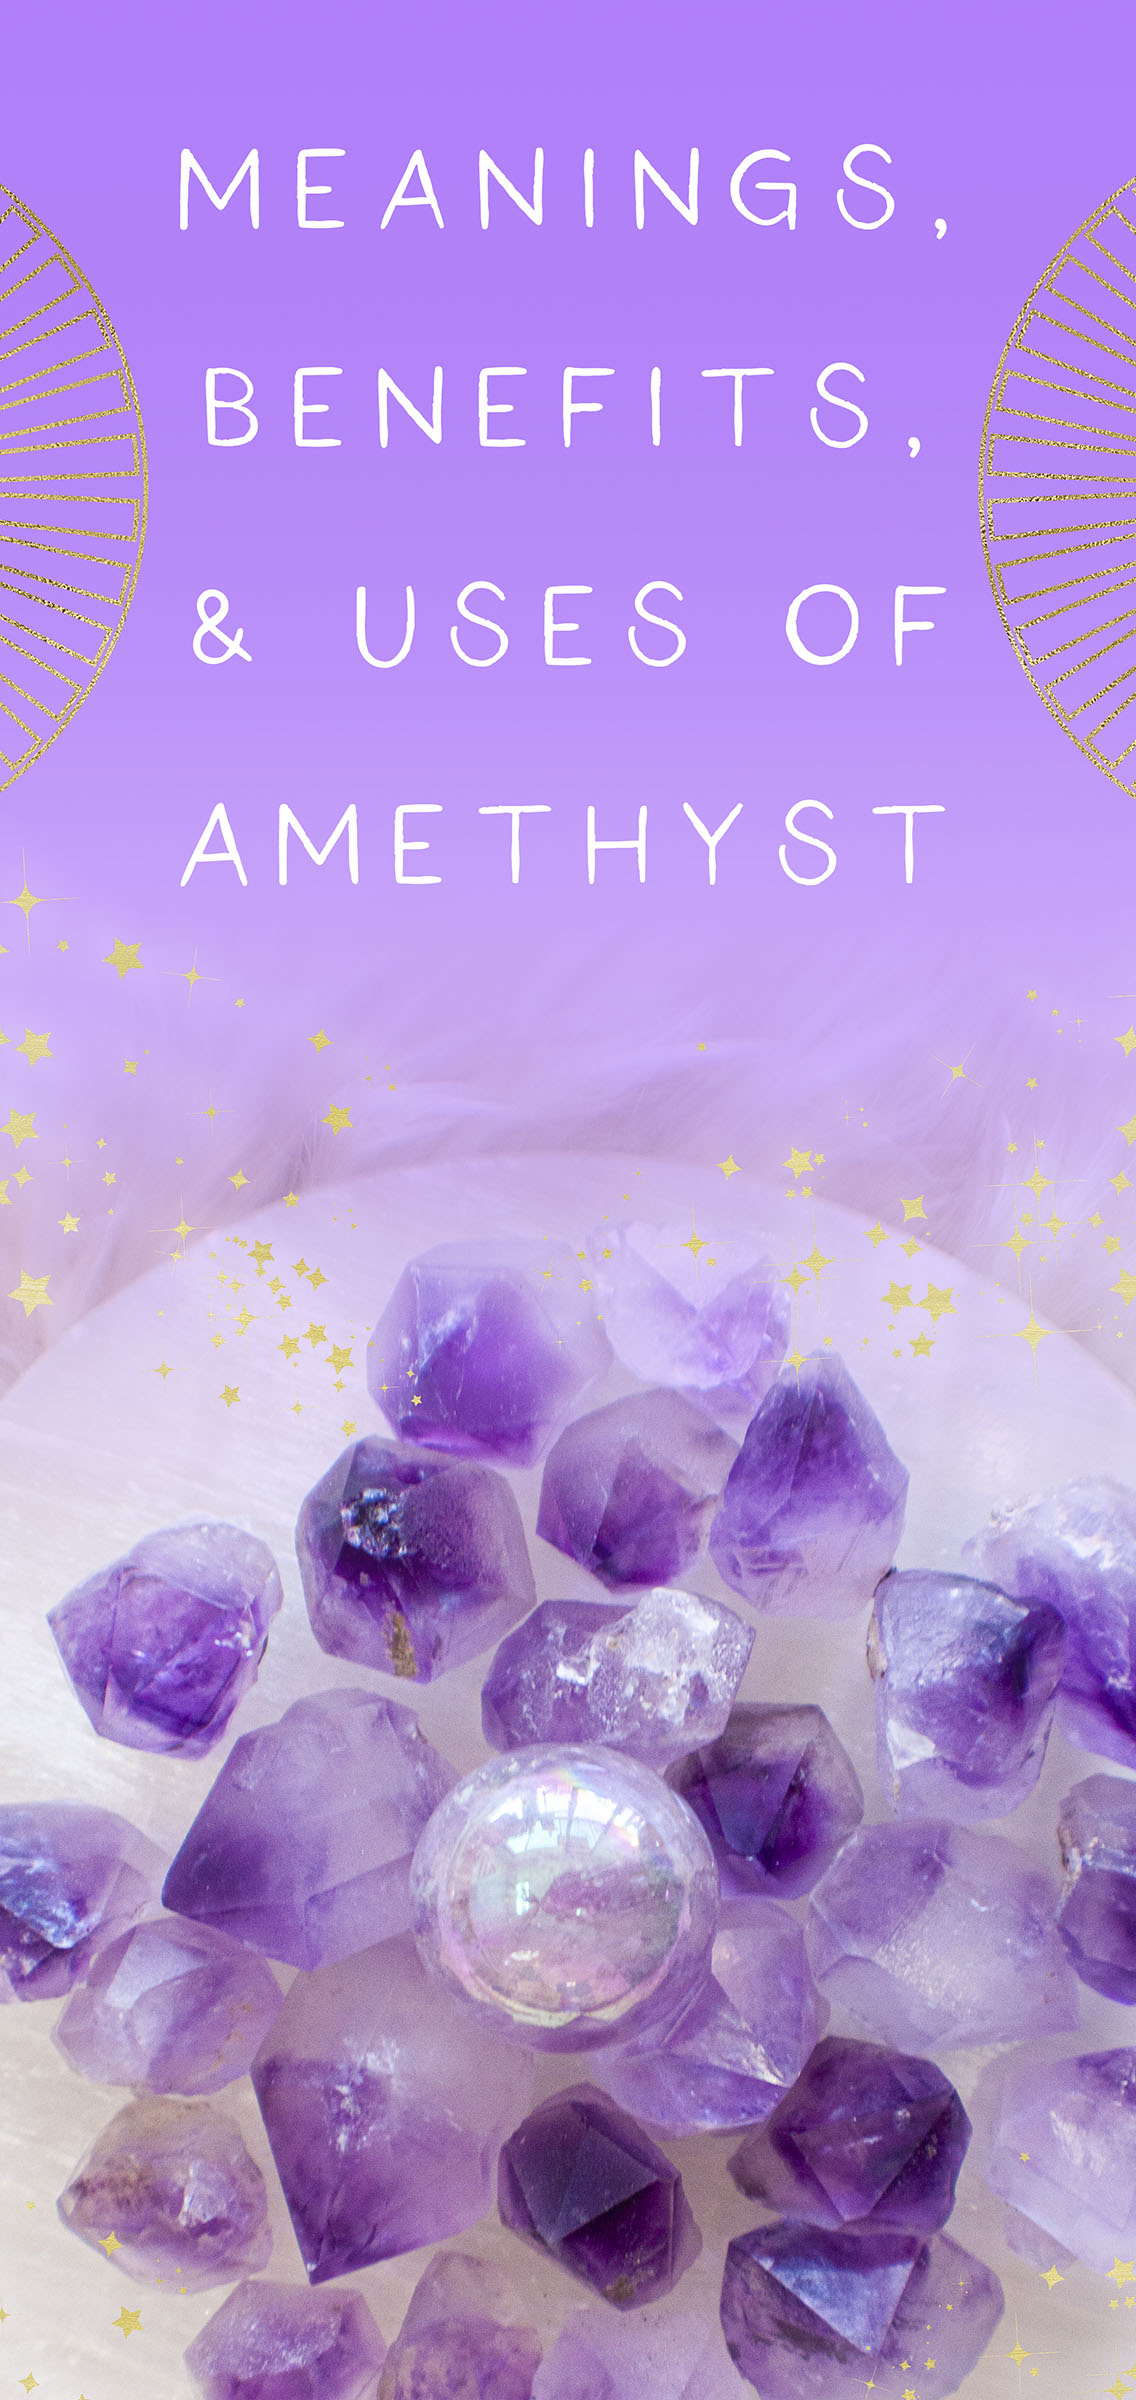 pic2-amethyst-meanings-uses-and-benefits-of-amethyst